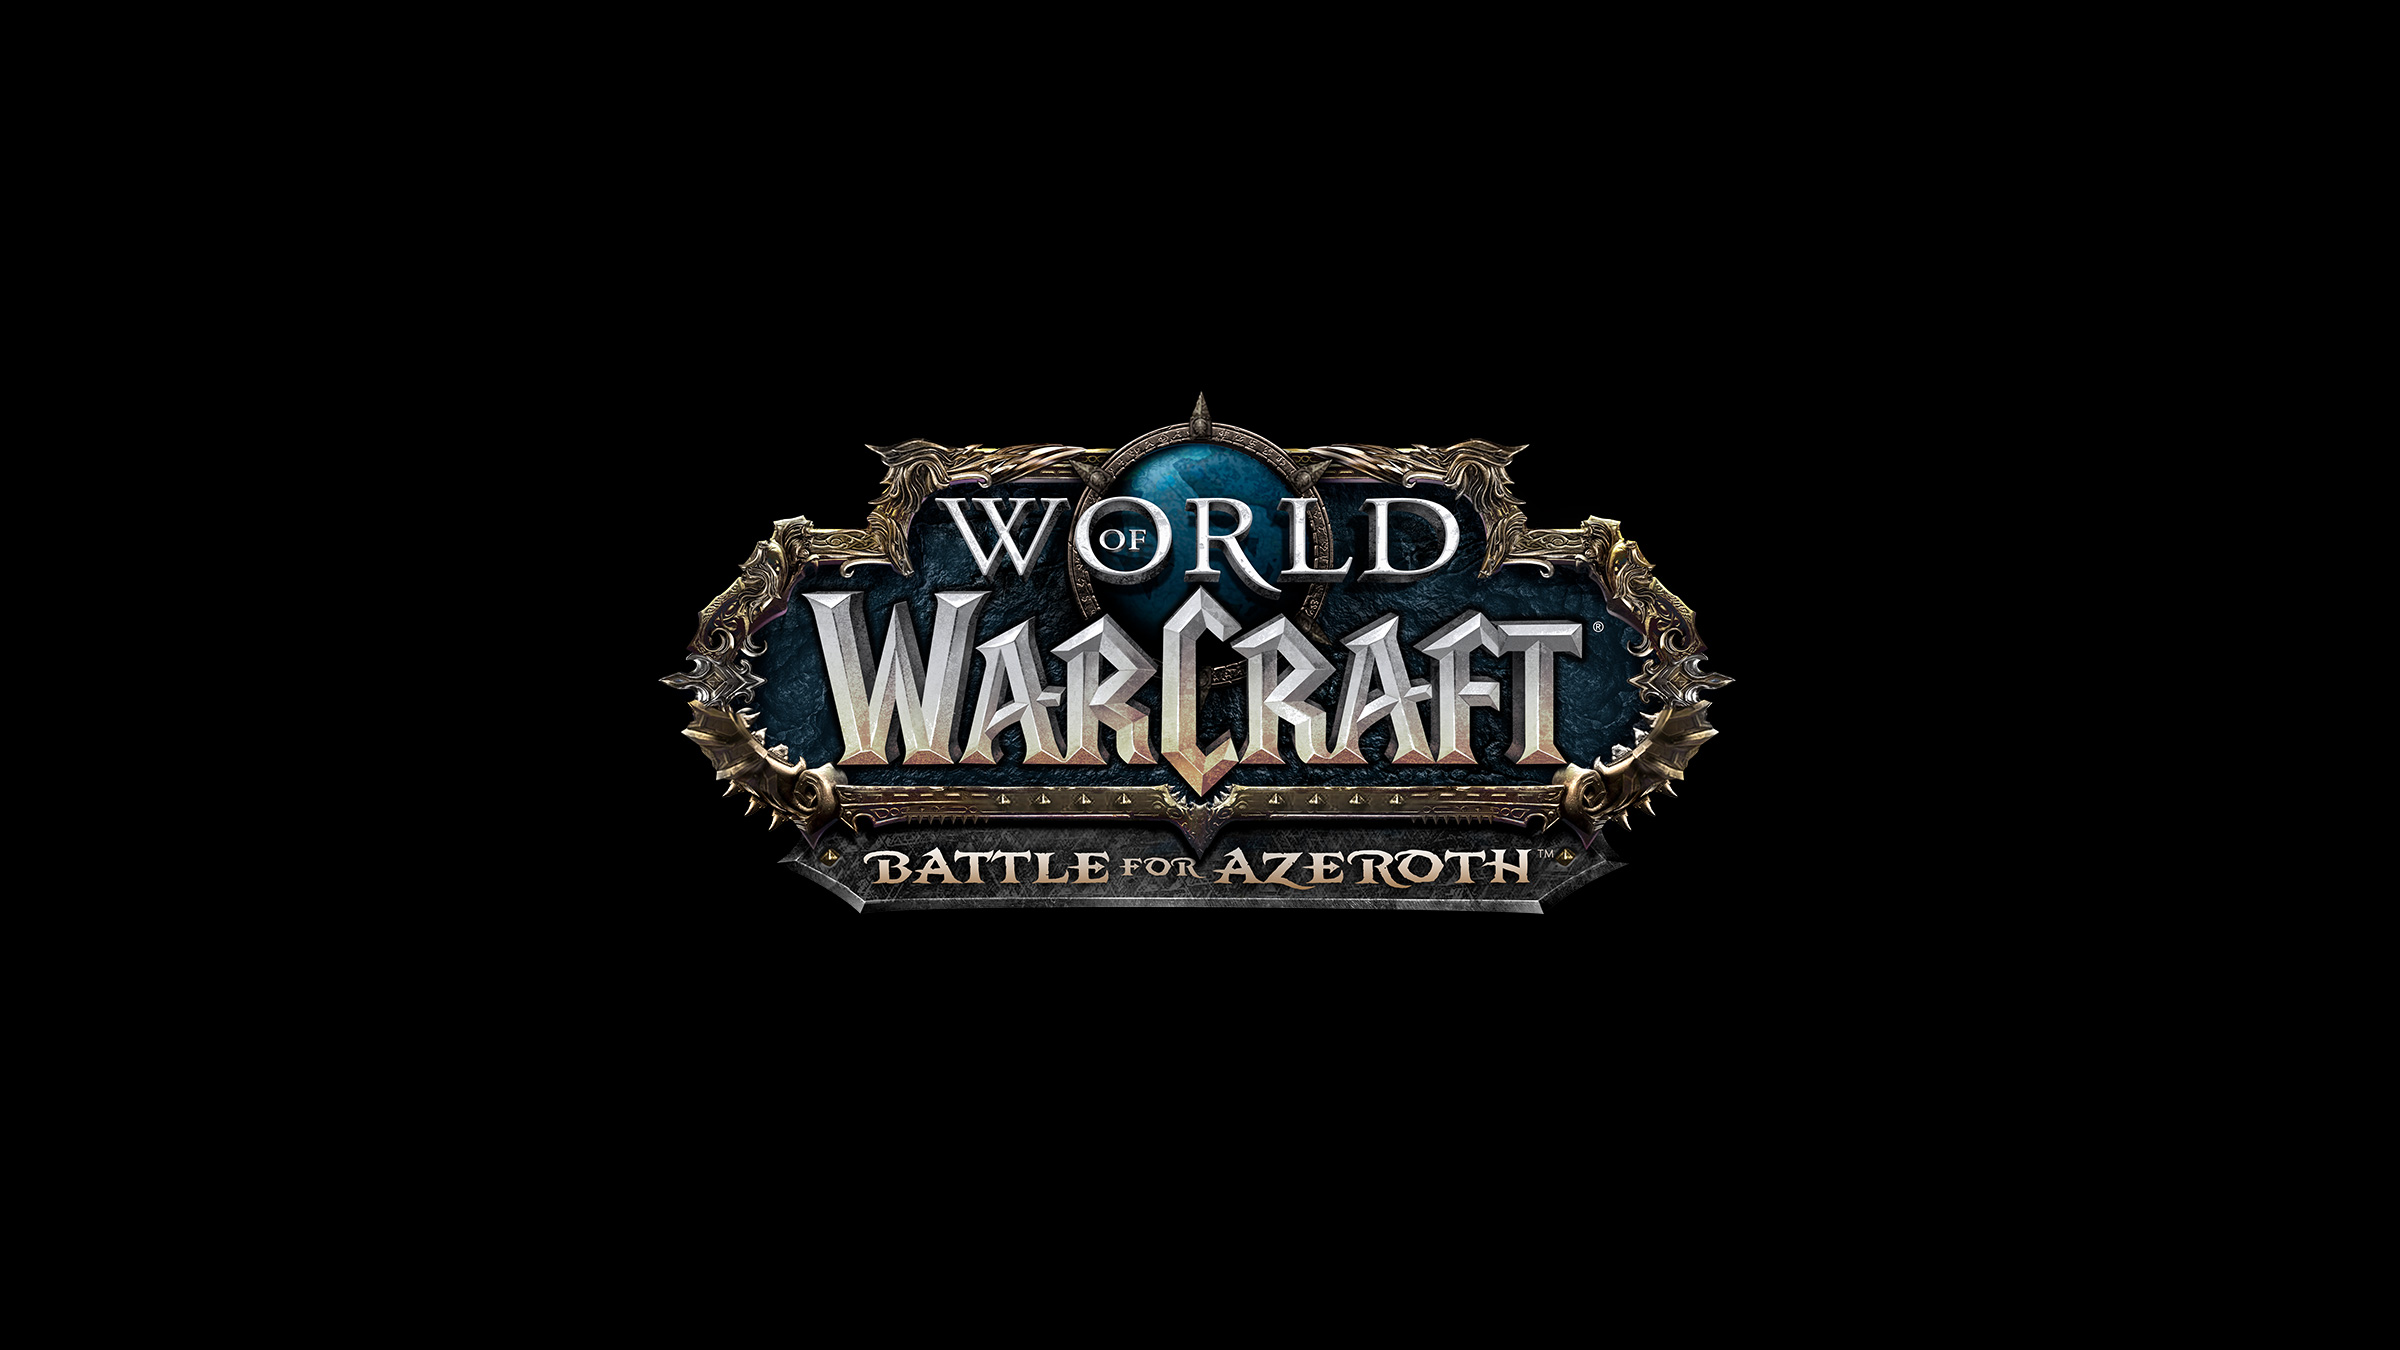 World of Warcraft alla BlizzCon 2017